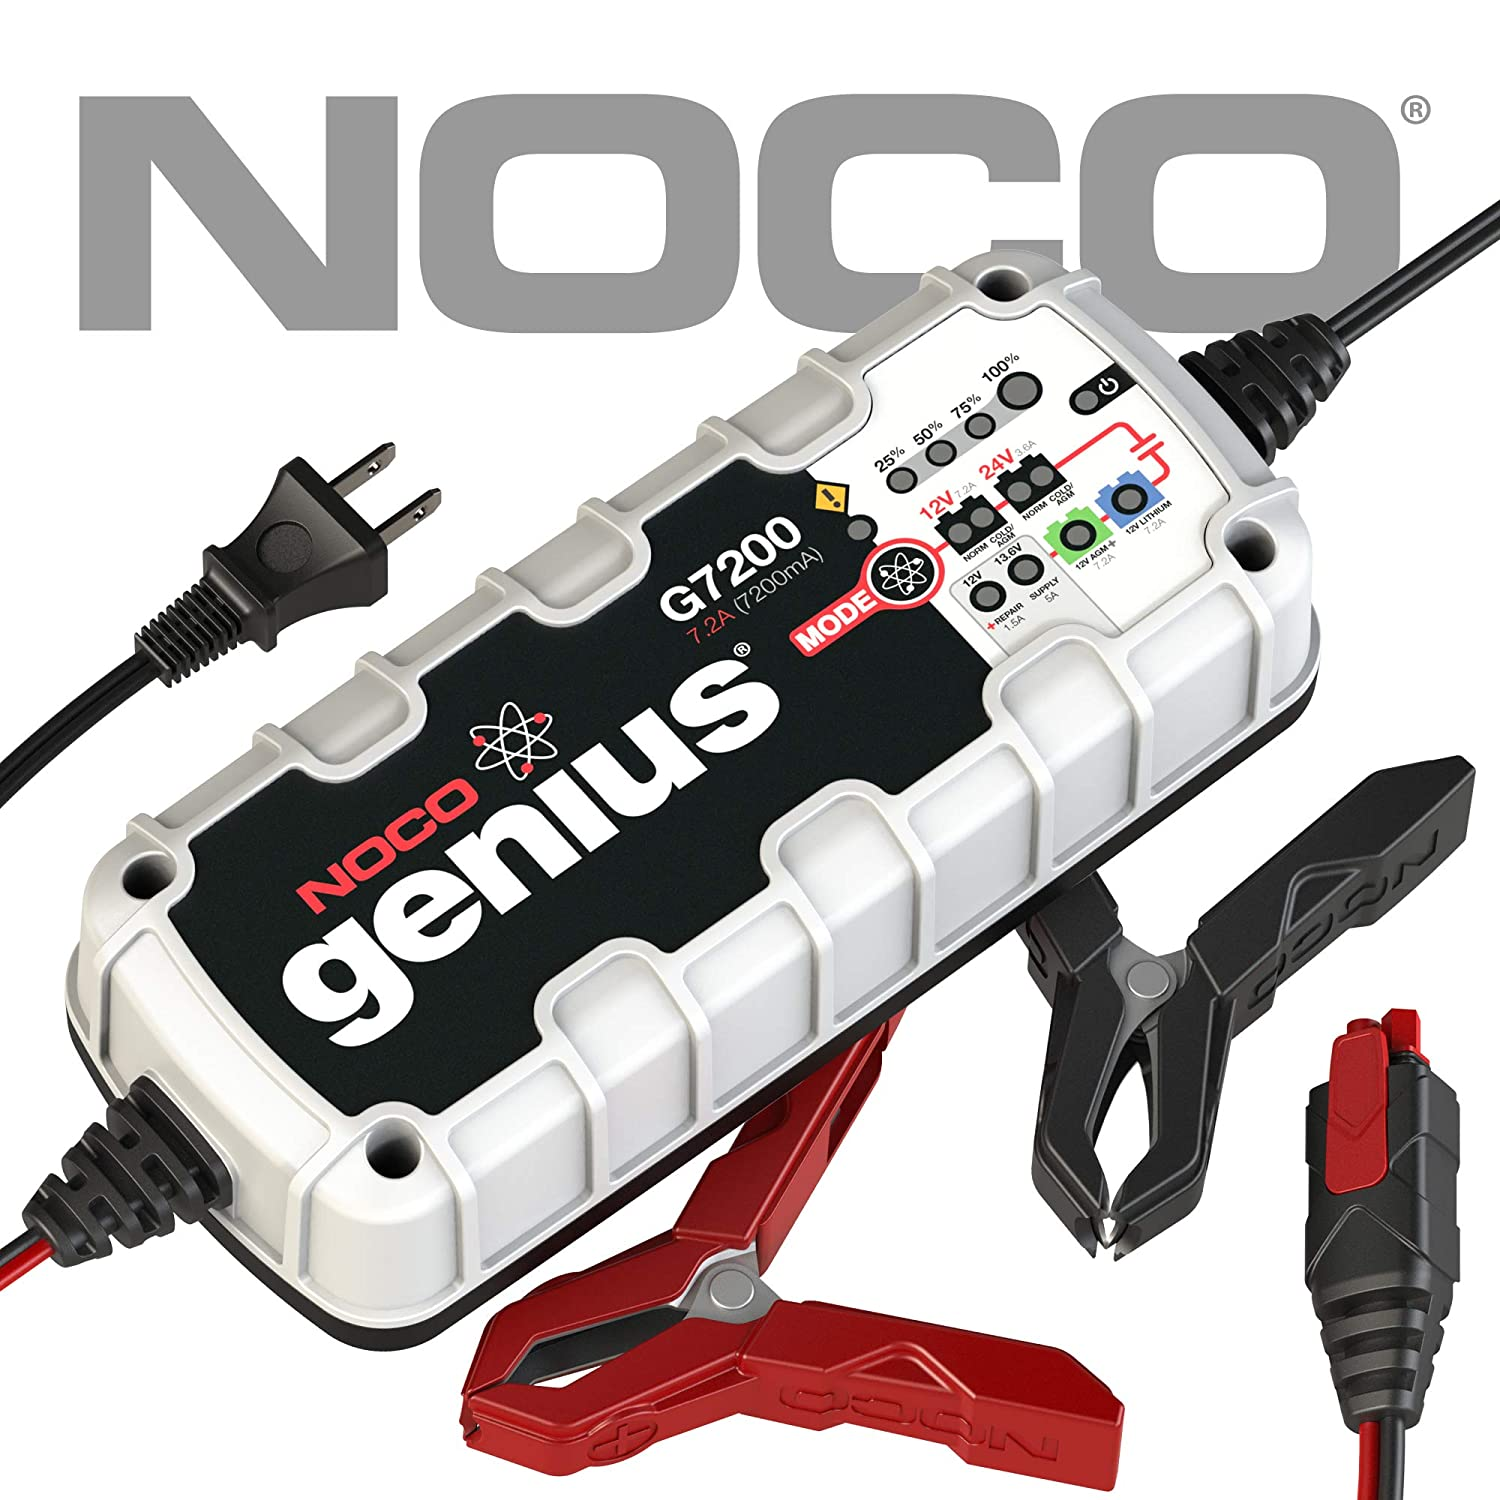 NOCO Genius G26000 12V//24V 26 Amp Pro-Series Battery Charger and Maintainer